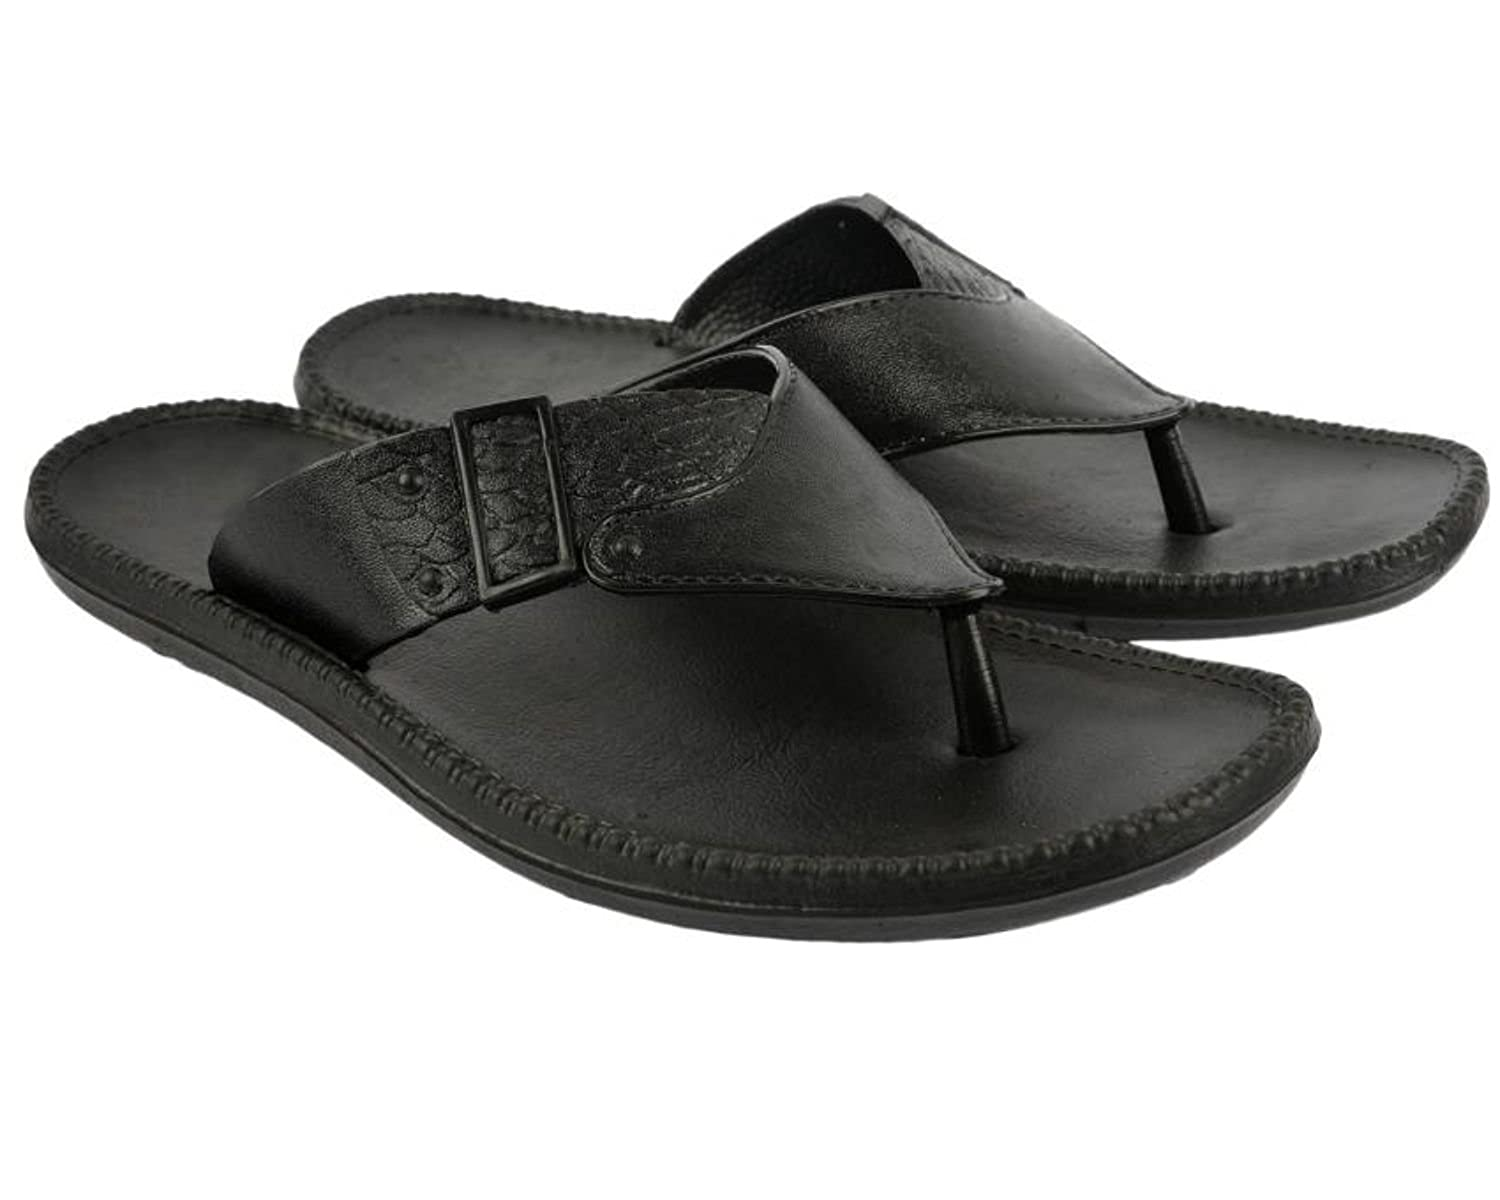 f5992398cc03 EDIZI Men's And Boy's Black Slippers And Flip Flops: Amazon.in: Shoes &  Handbags